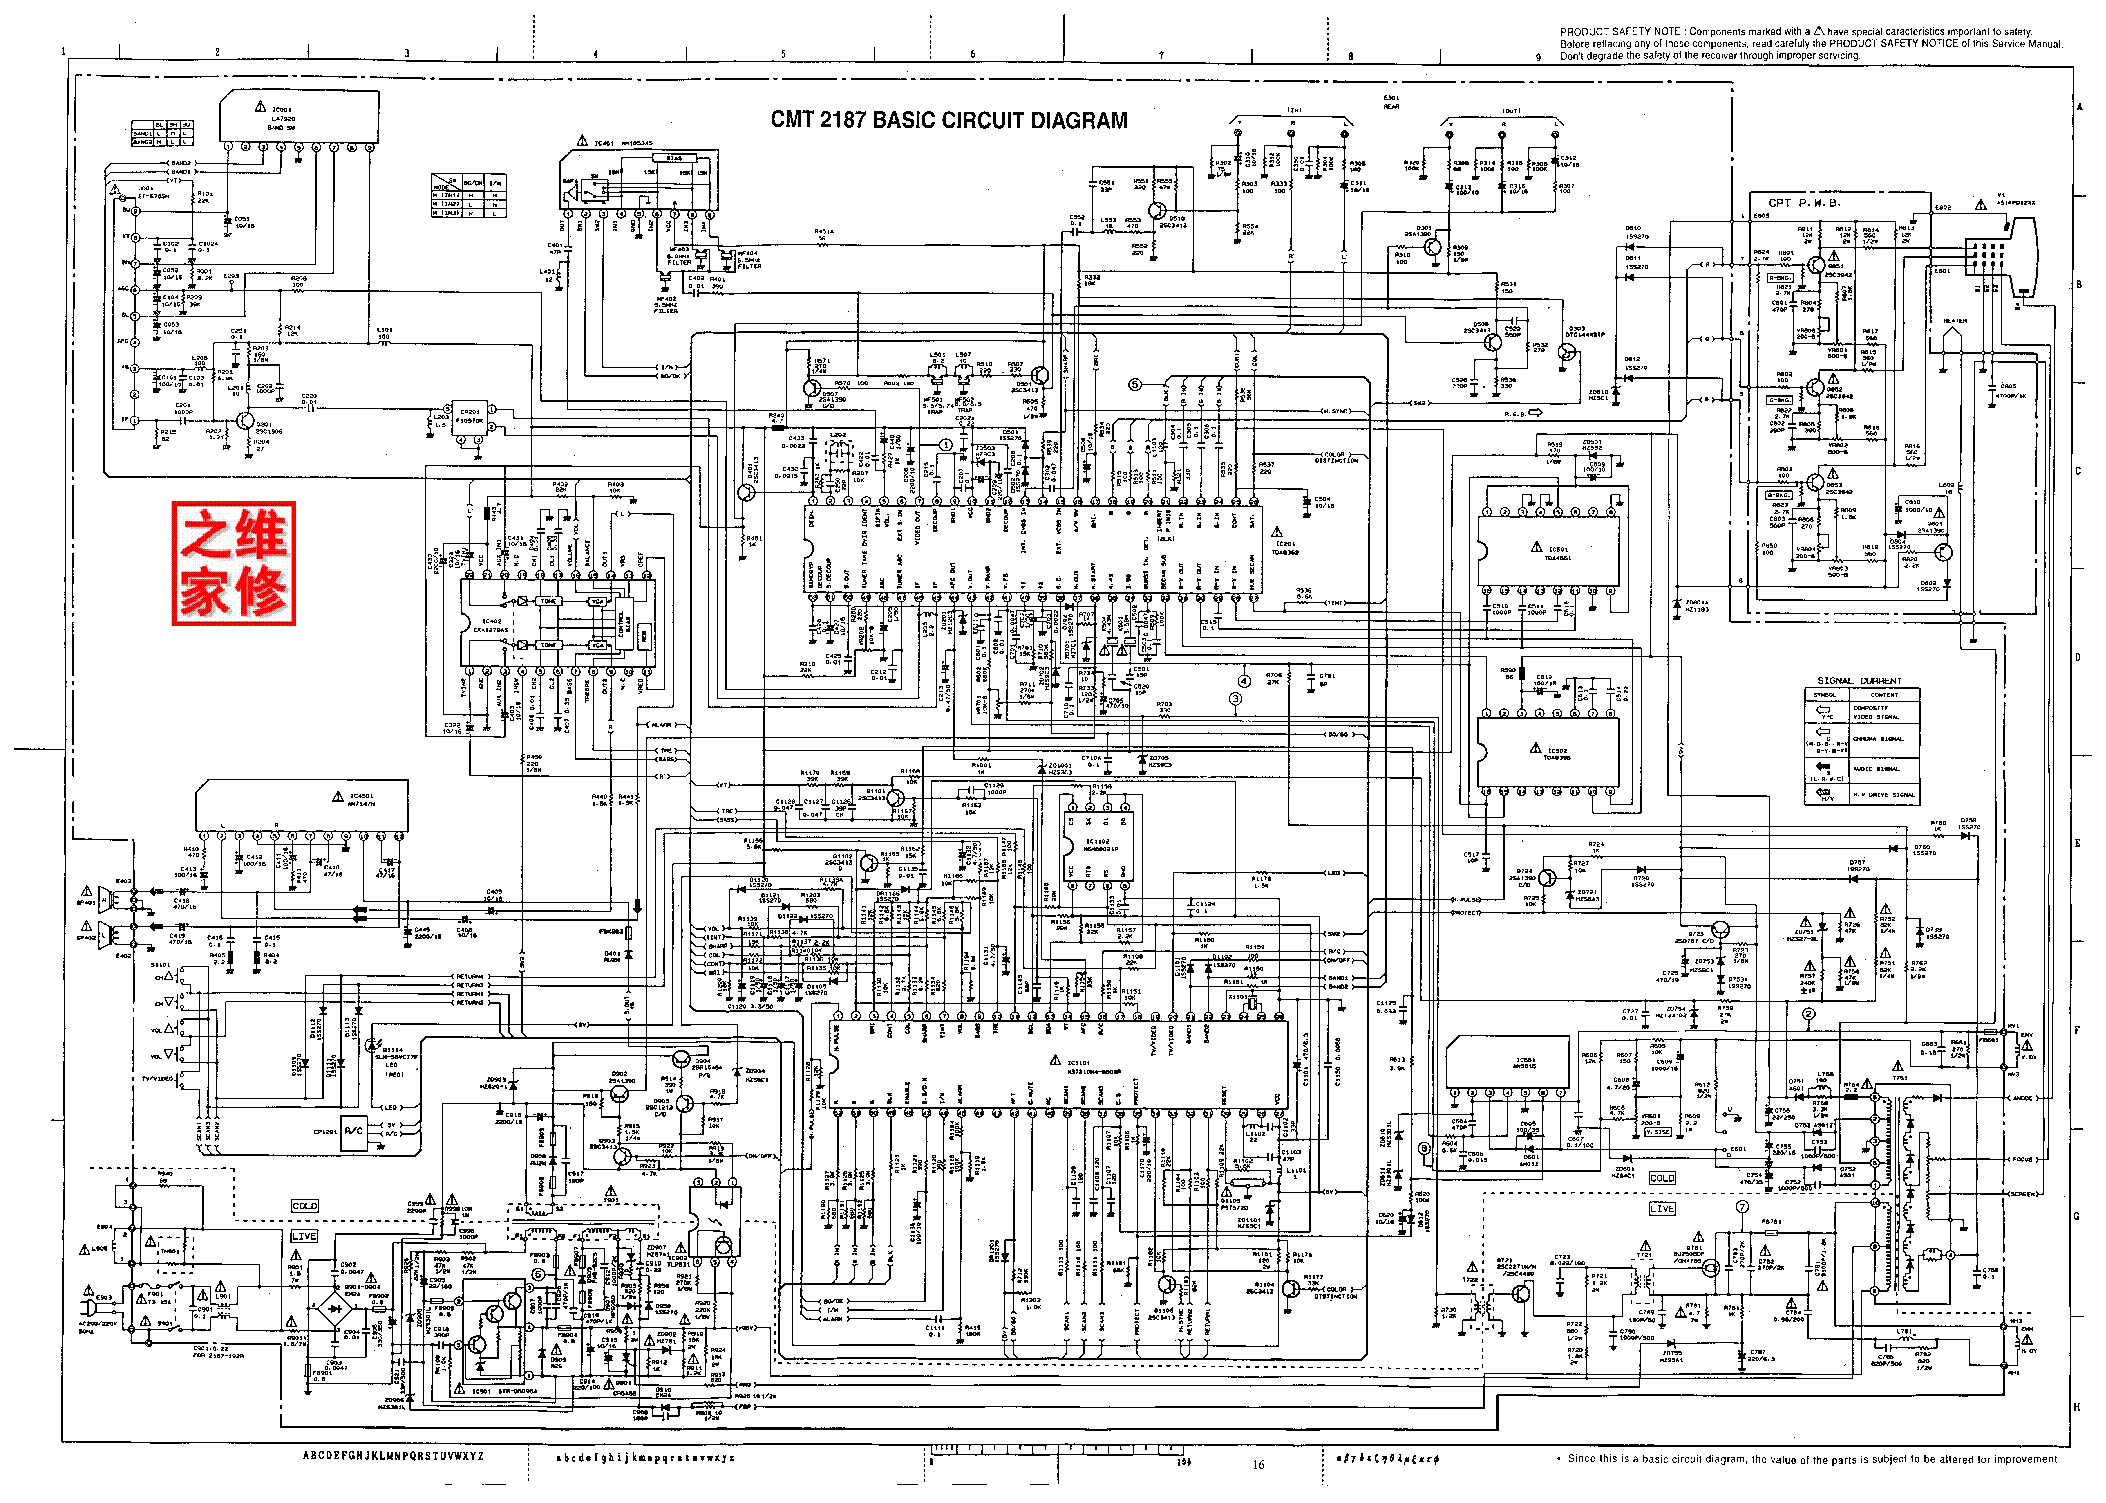 HITACHI CMT2187-BASIC-CIRCUIT-DIAGRAM-1 Service Manual download ...